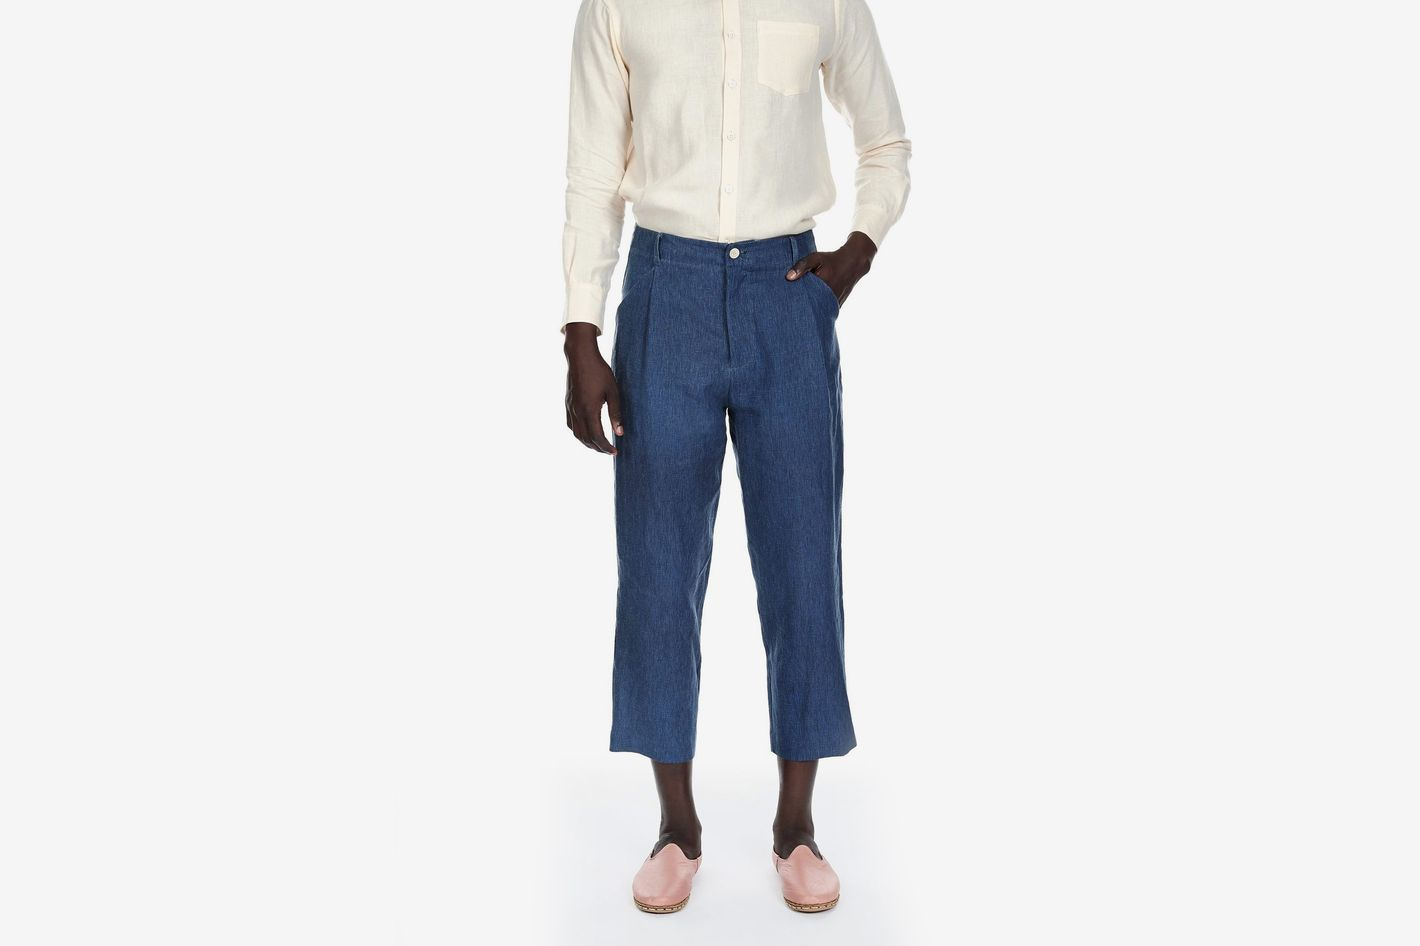 89612197a3a The Best Linen Clothing